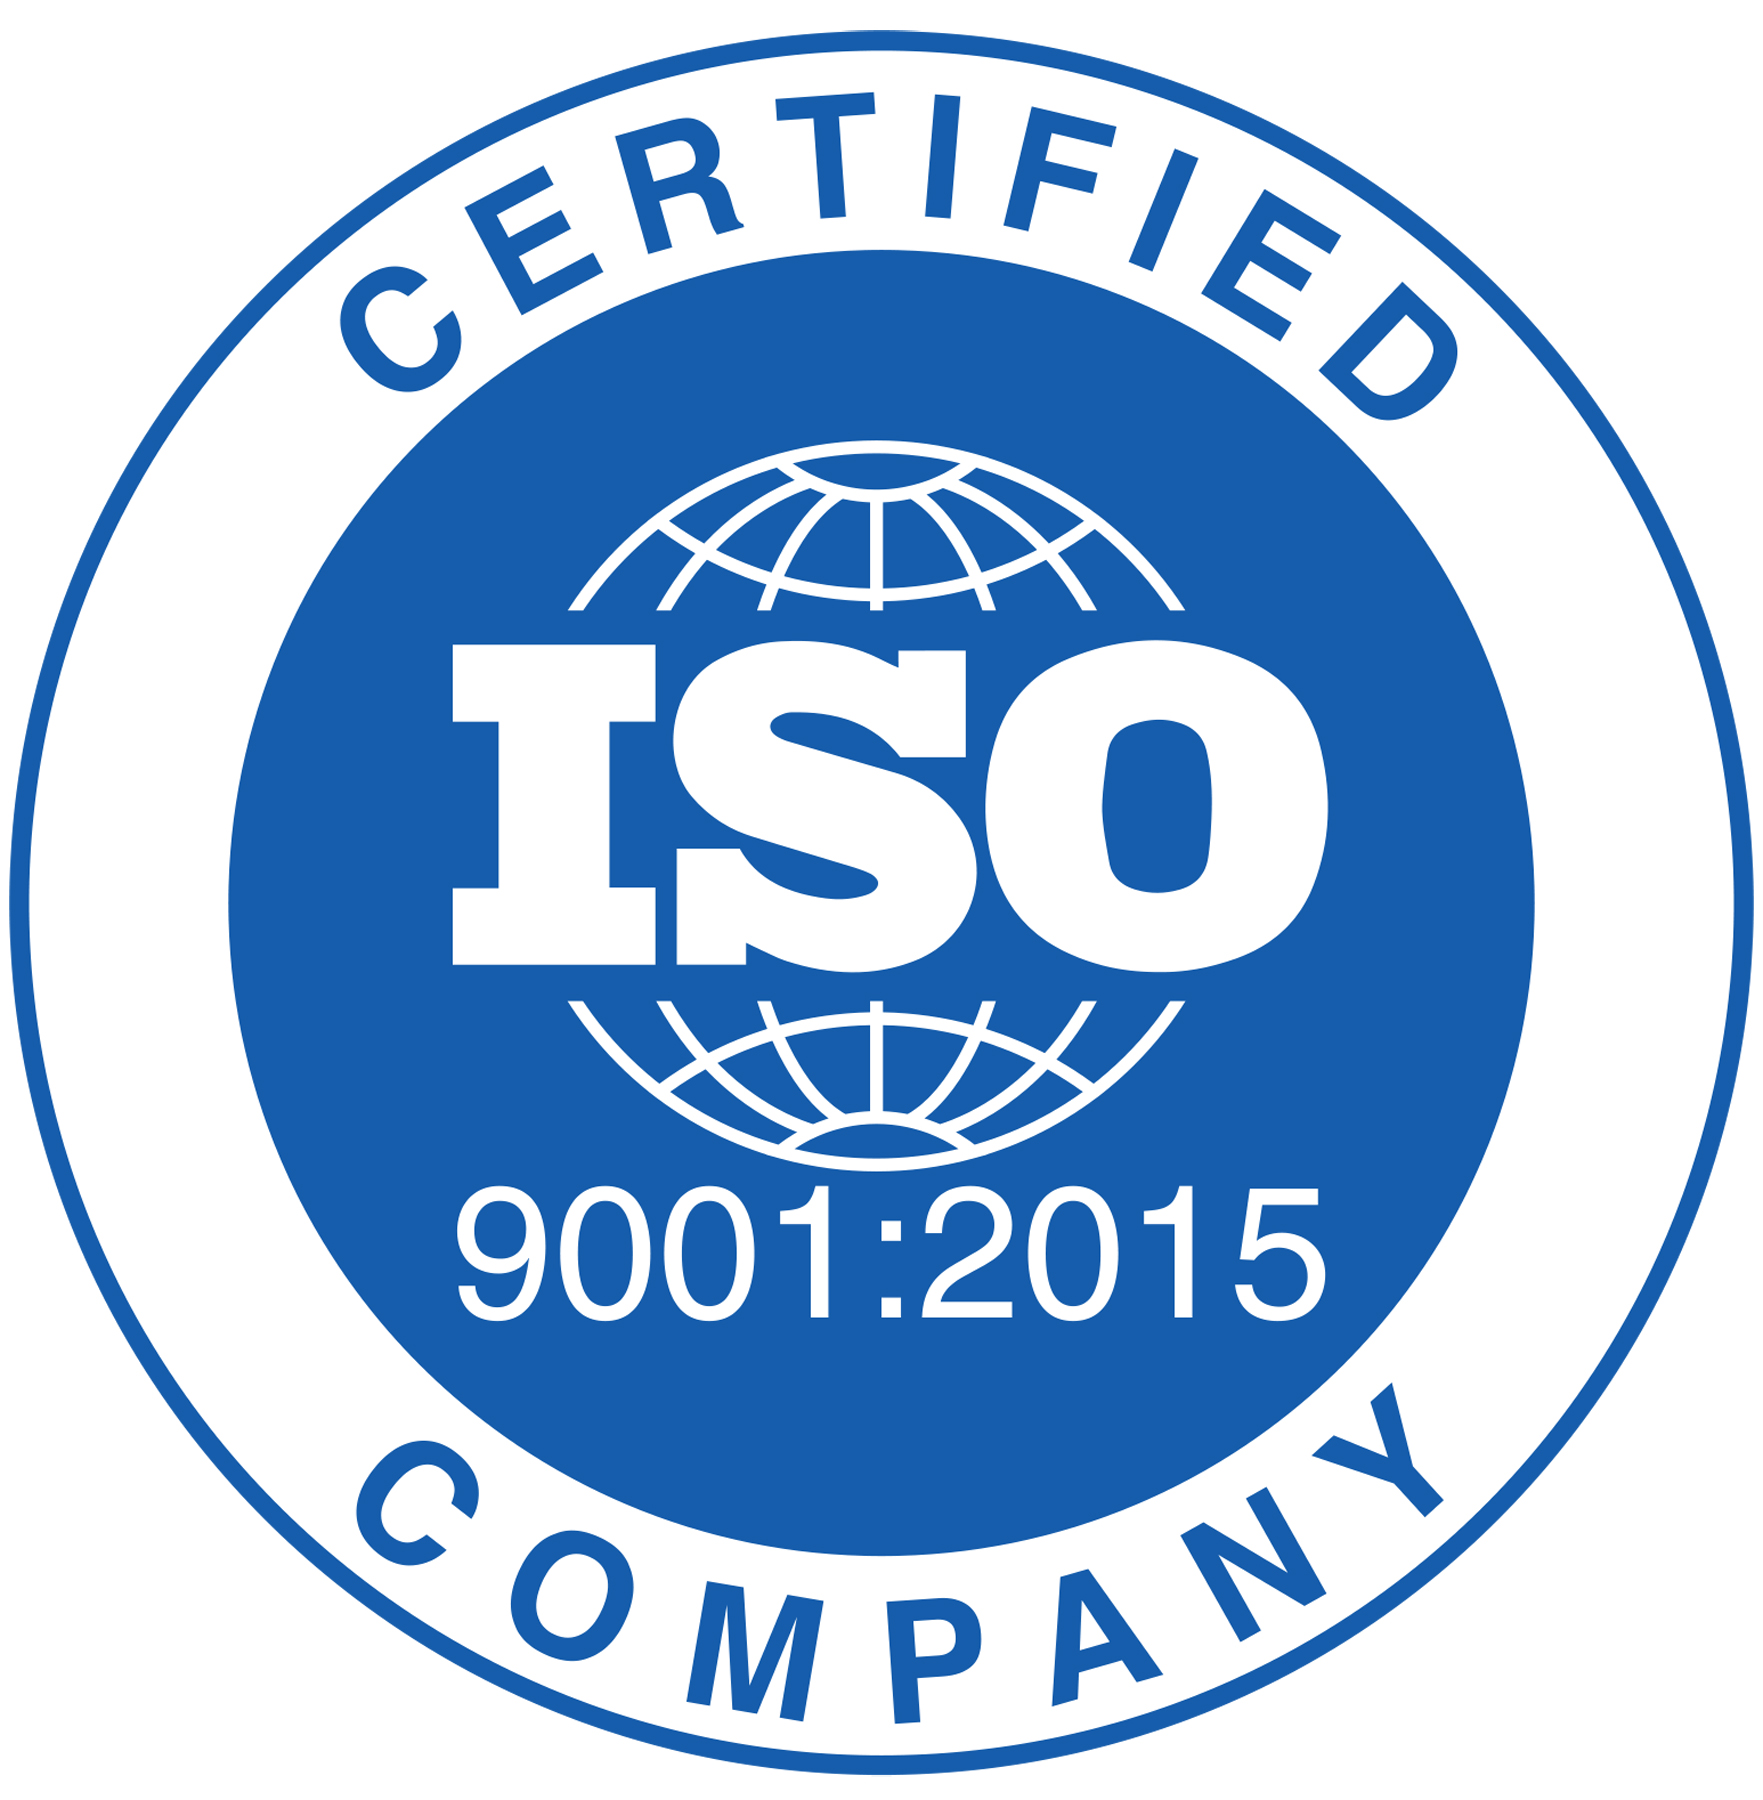 Proud To Announce We Have Achieved Iso 90012015 Certification